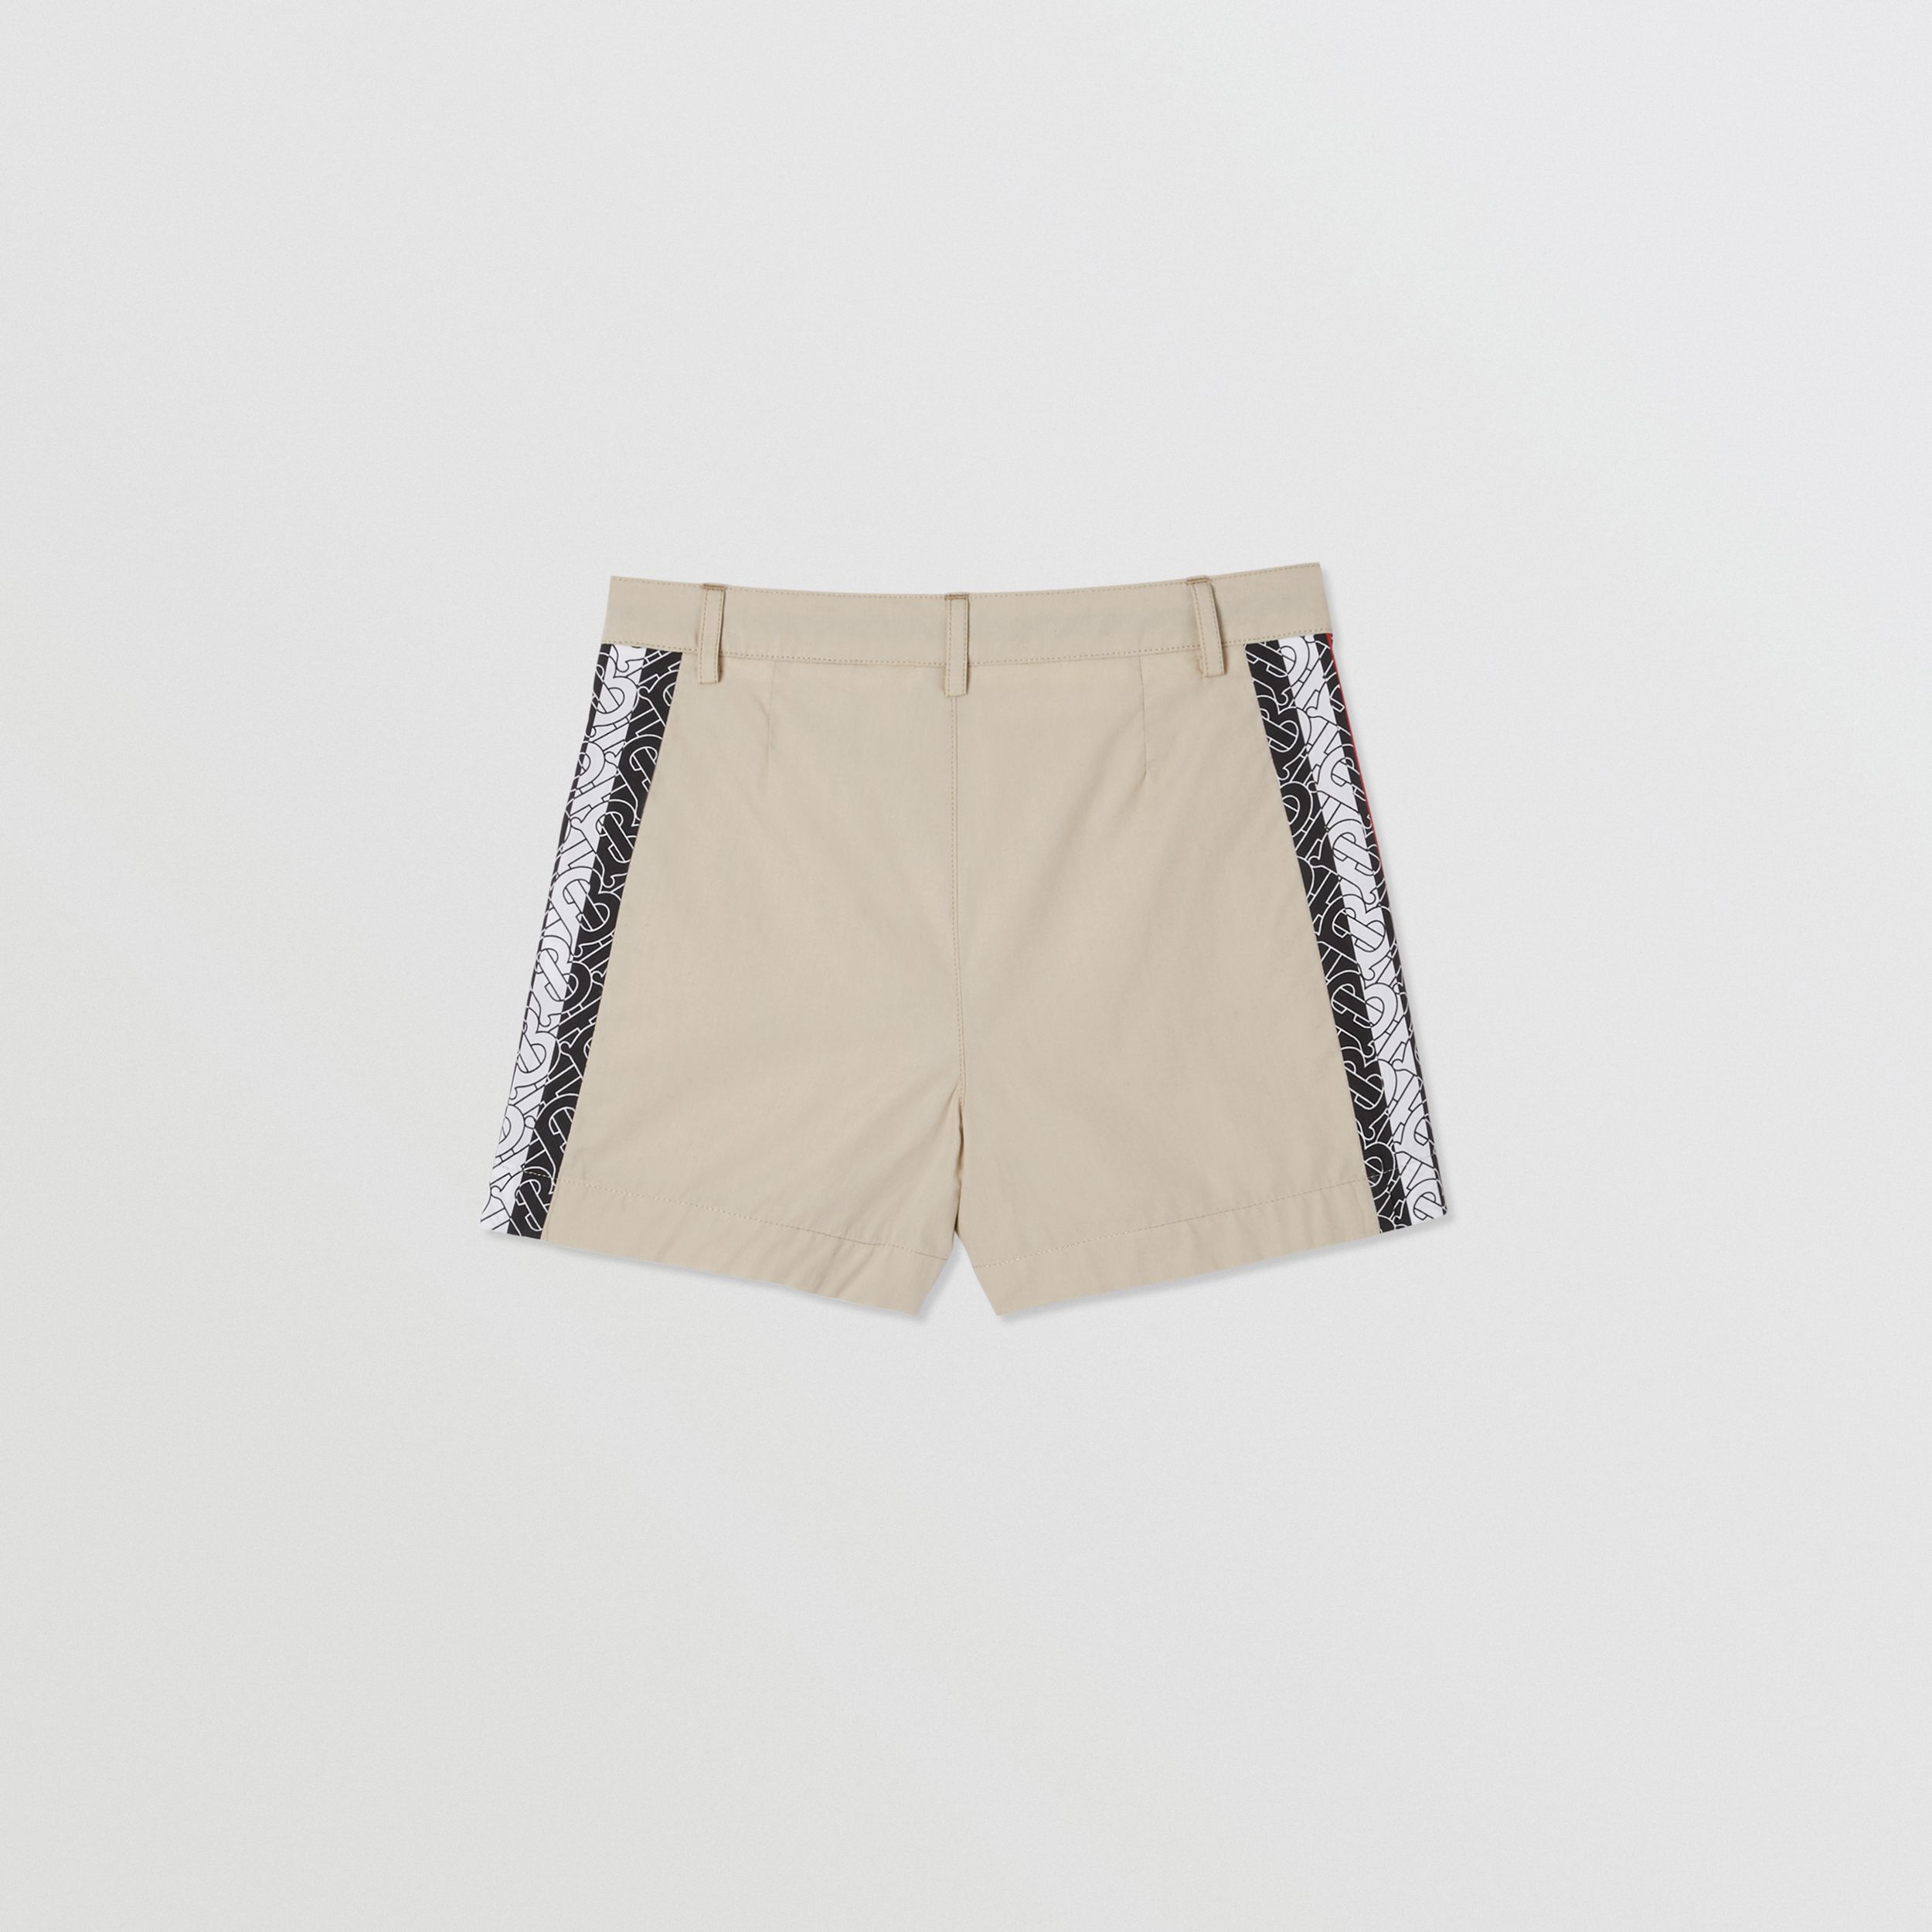 Monogram Stripe Print Cotton Tailored Shorts in Stone | Burberry - 4